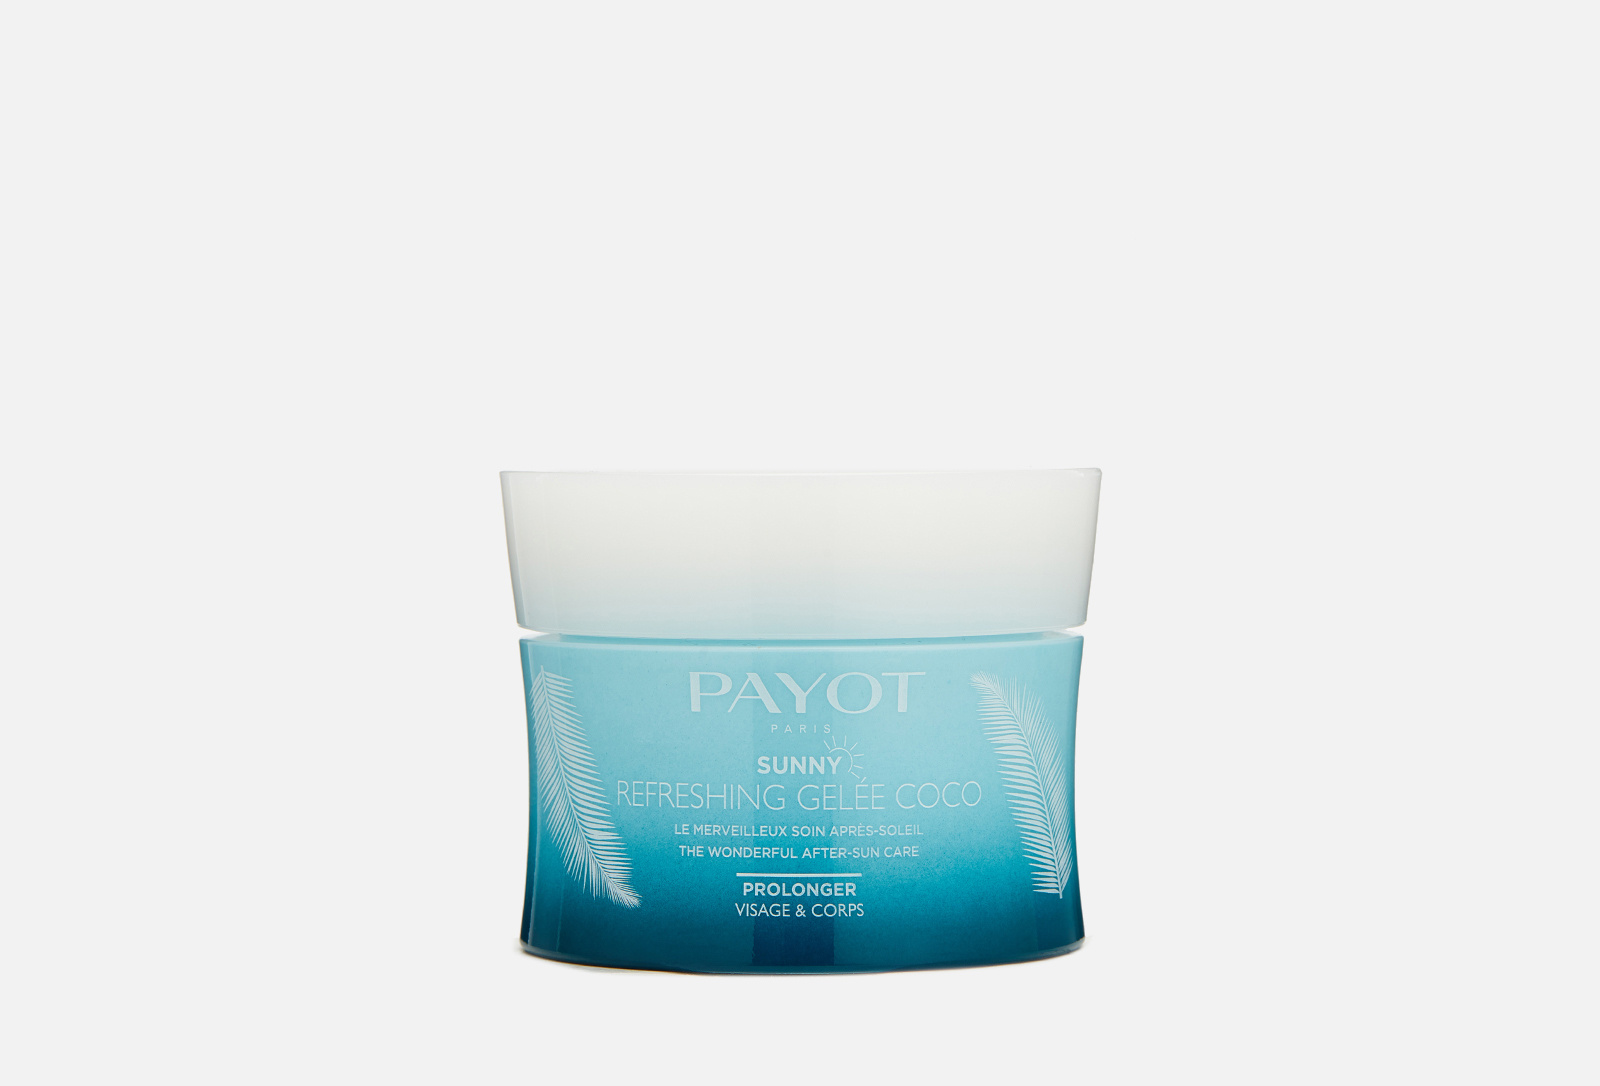 Payot Sunny Refreshing Gelee Coco After Sun